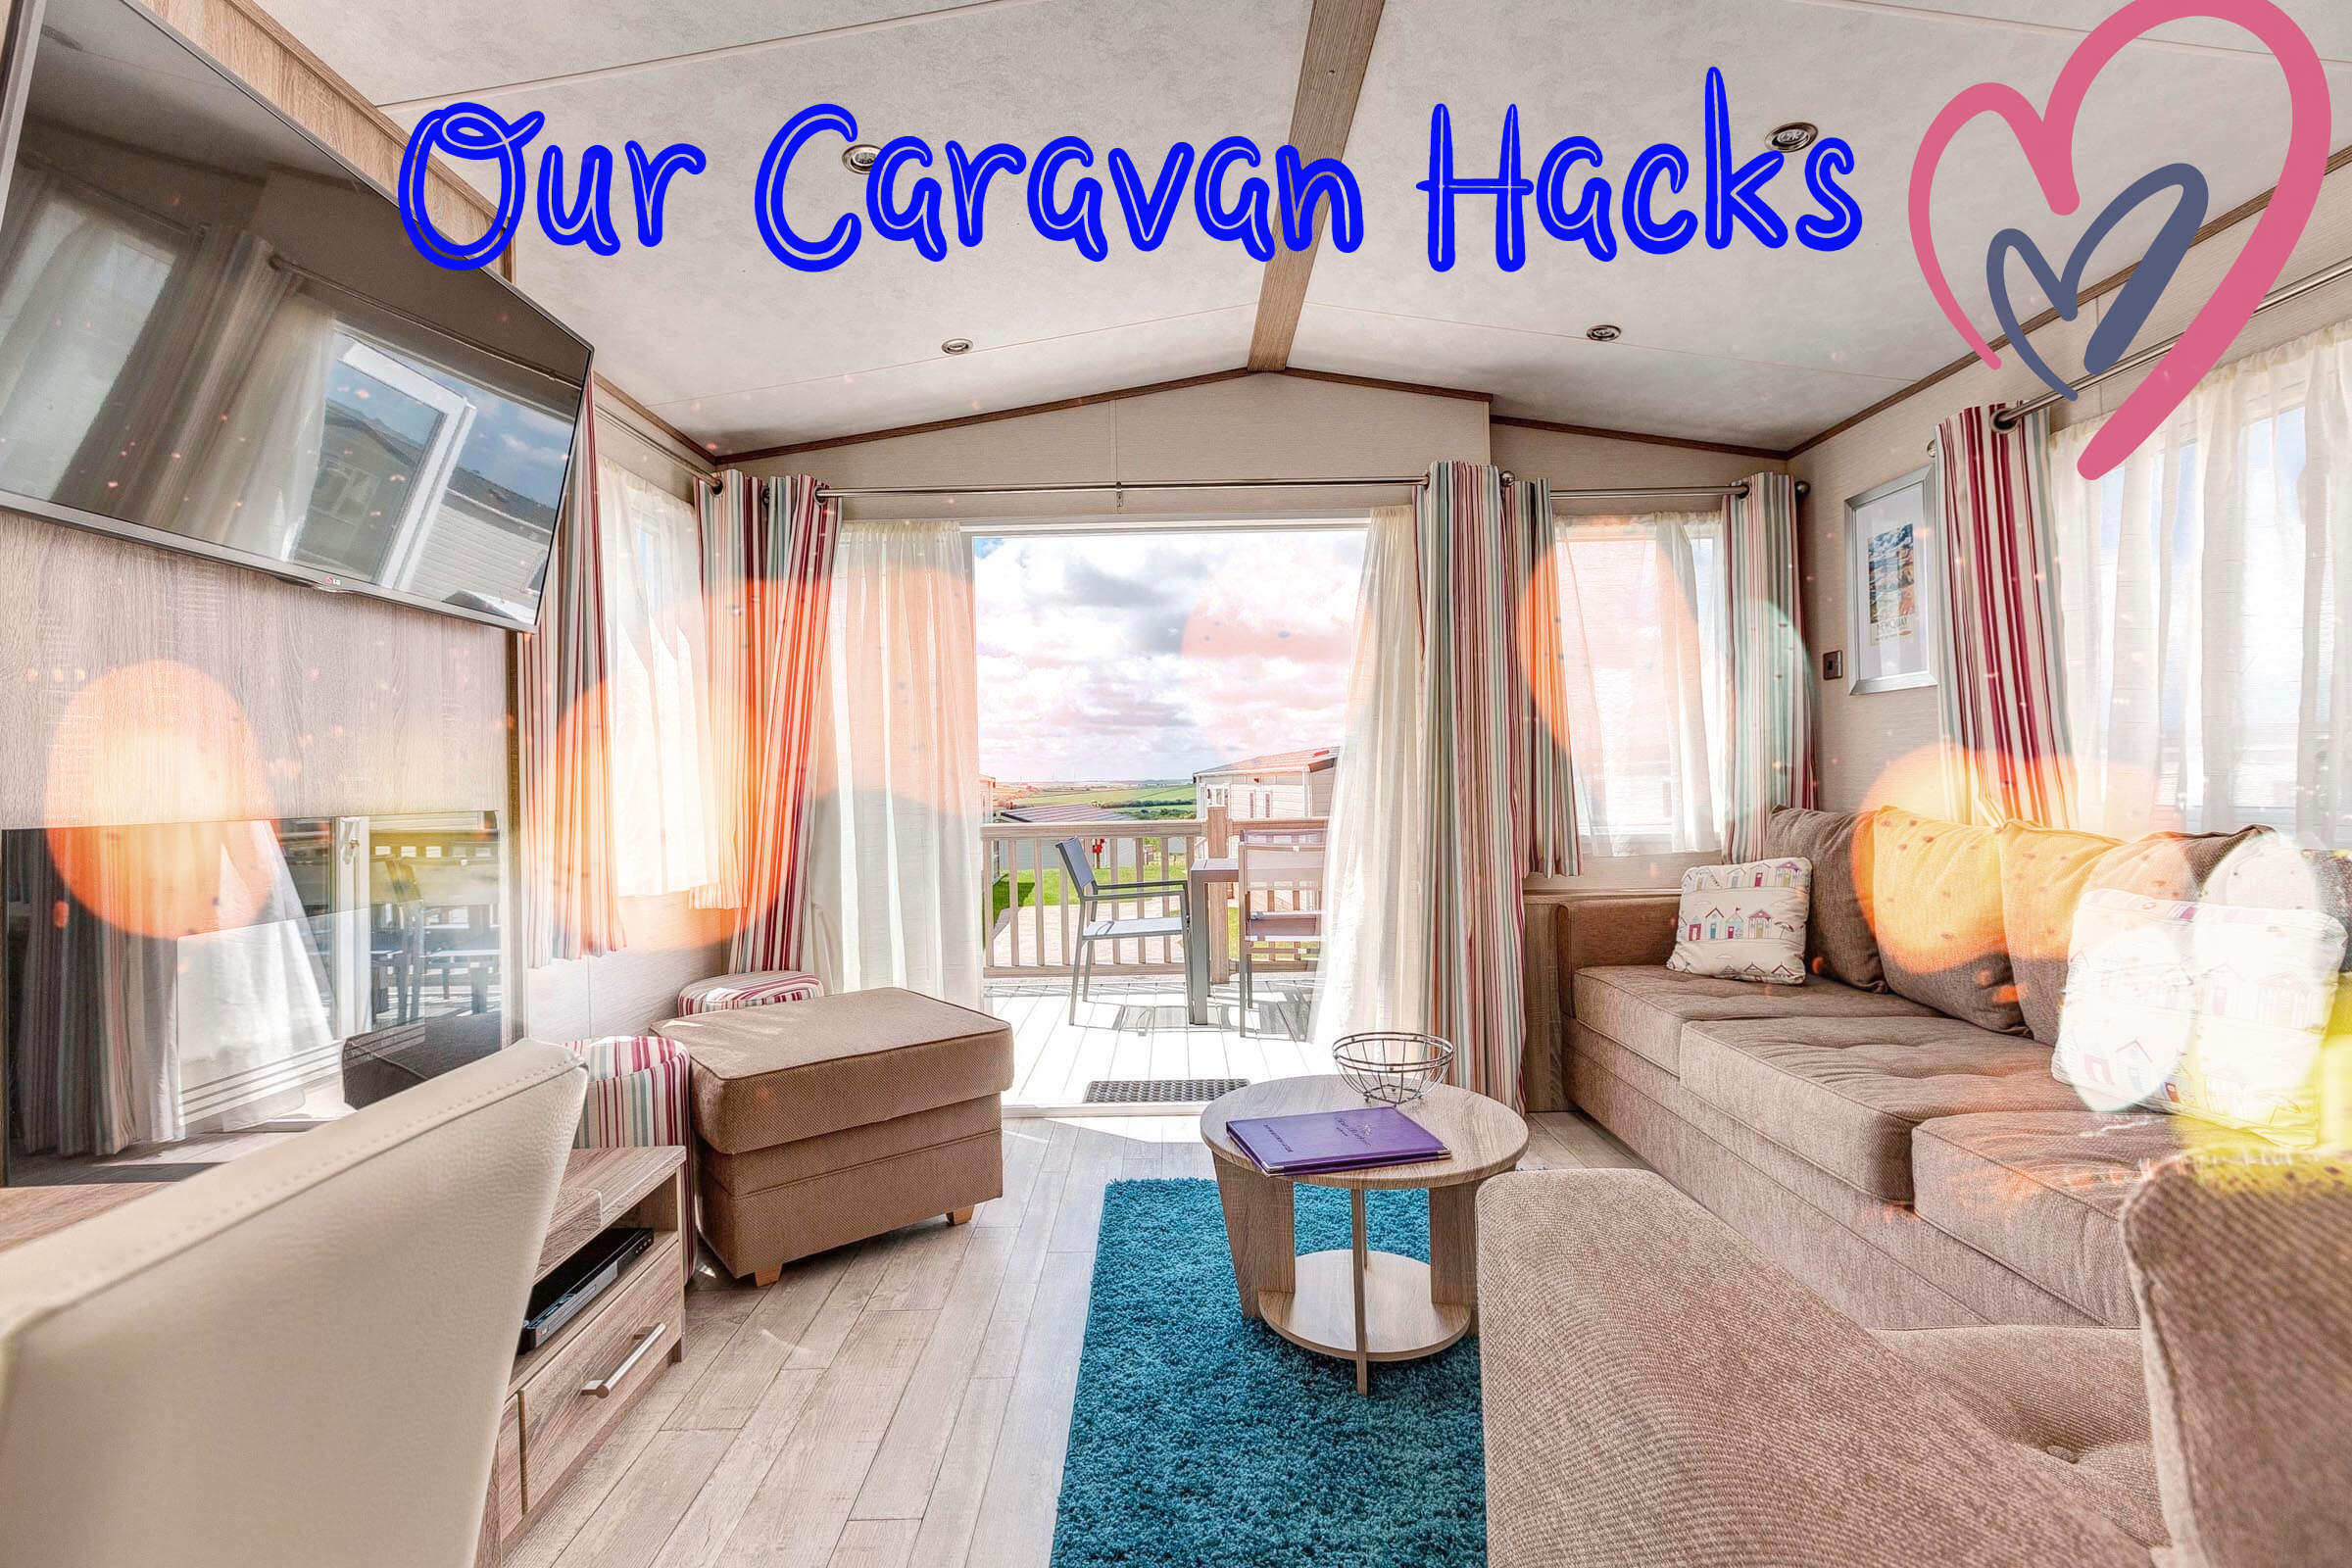 Caravan Holiday Hacks